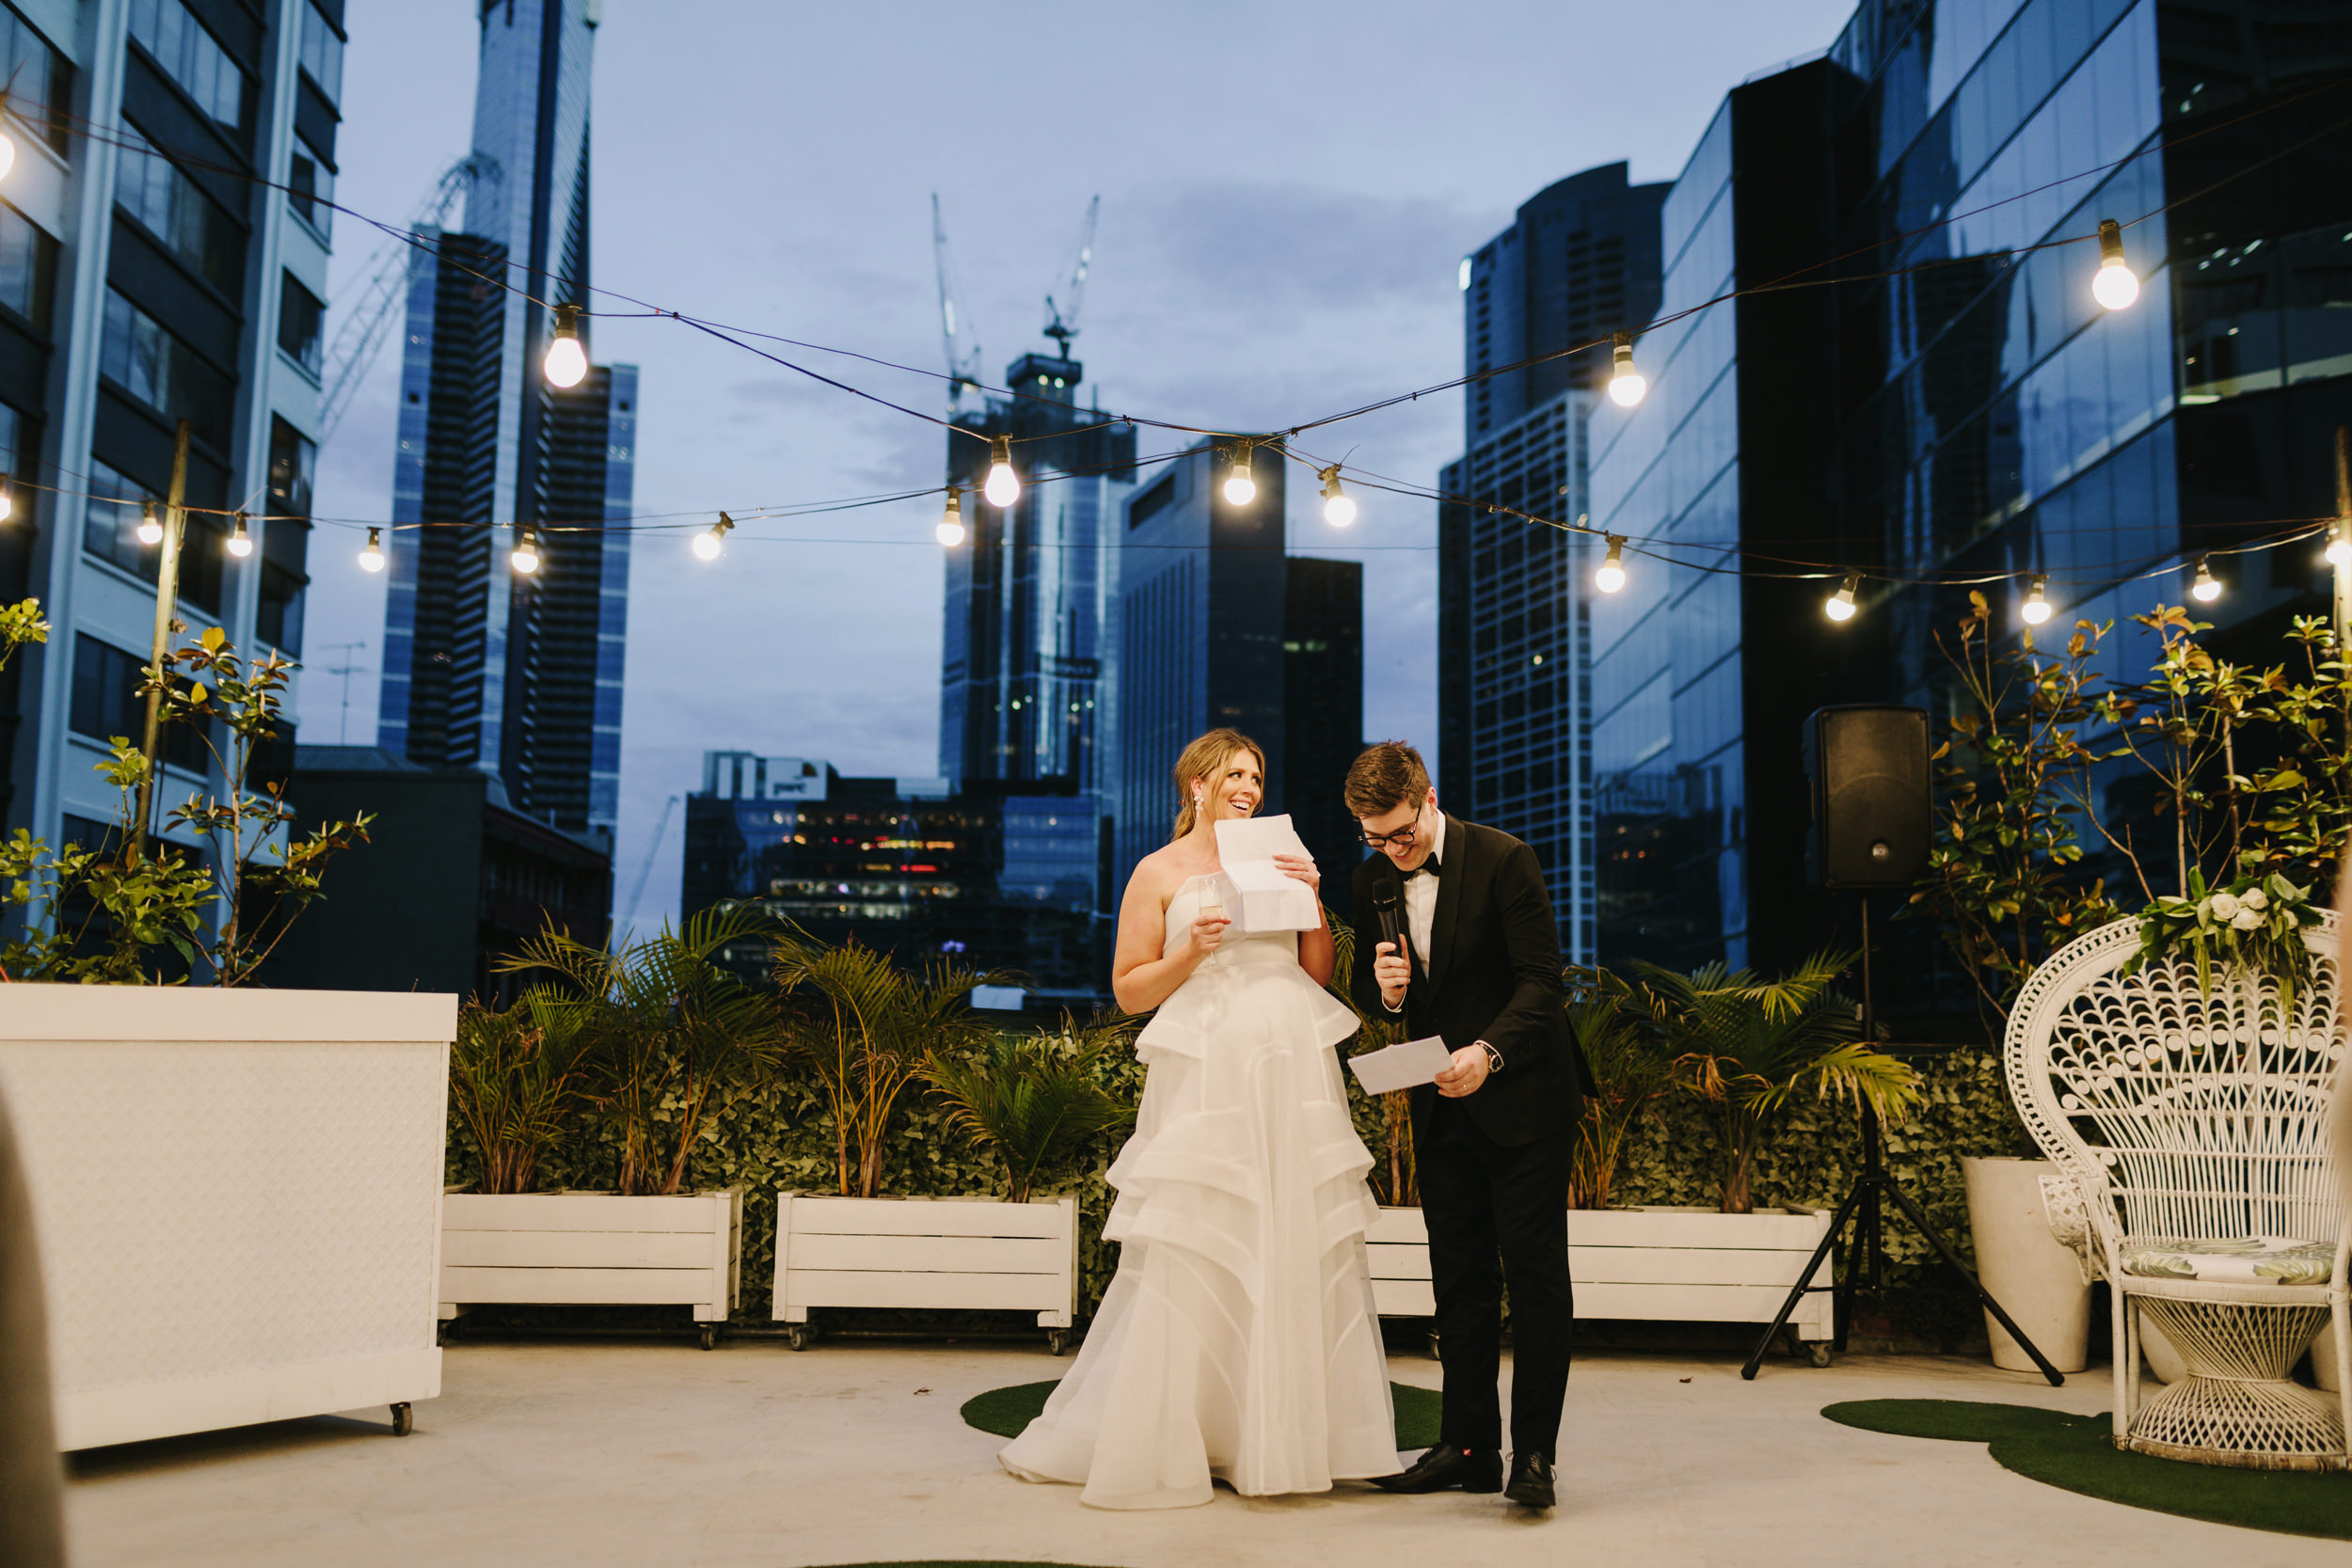 Melbourne_City_Rooftop_Wedding_Tyson_Brigette130.JPG